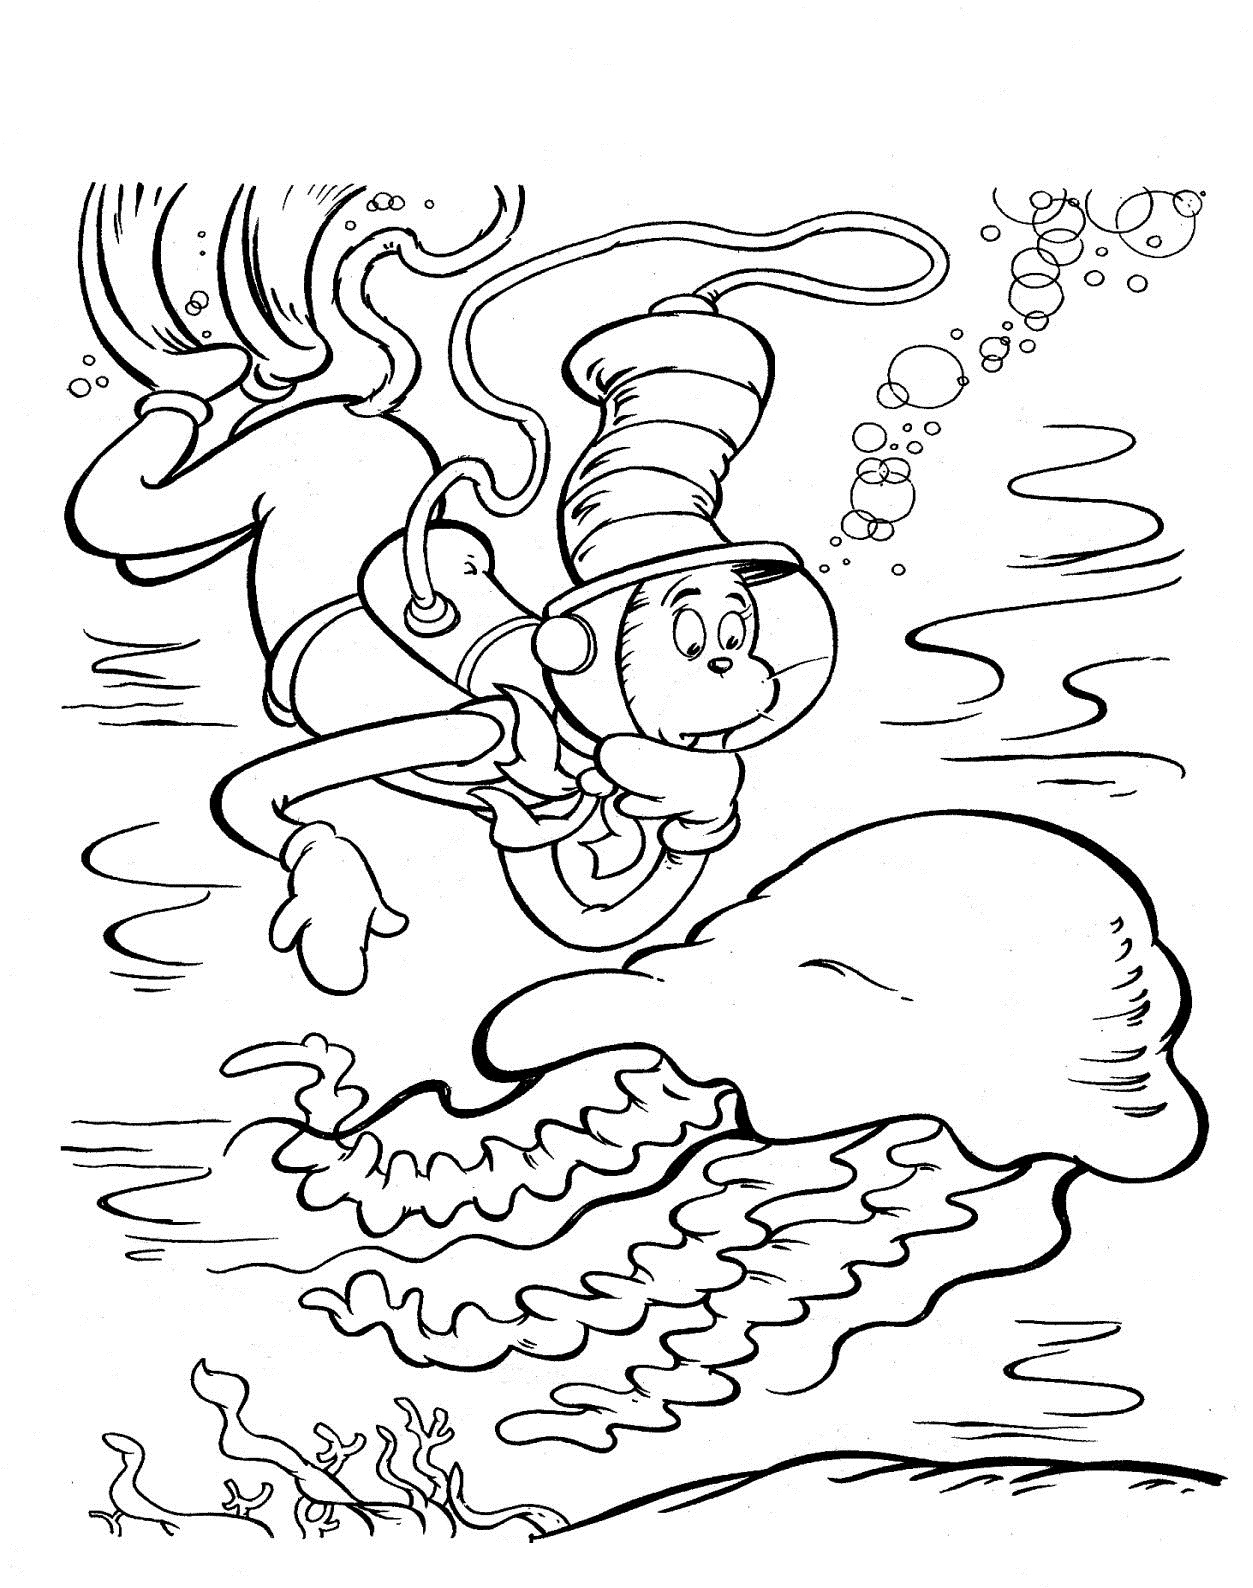 Free Printable Cat in the Hat Coloring